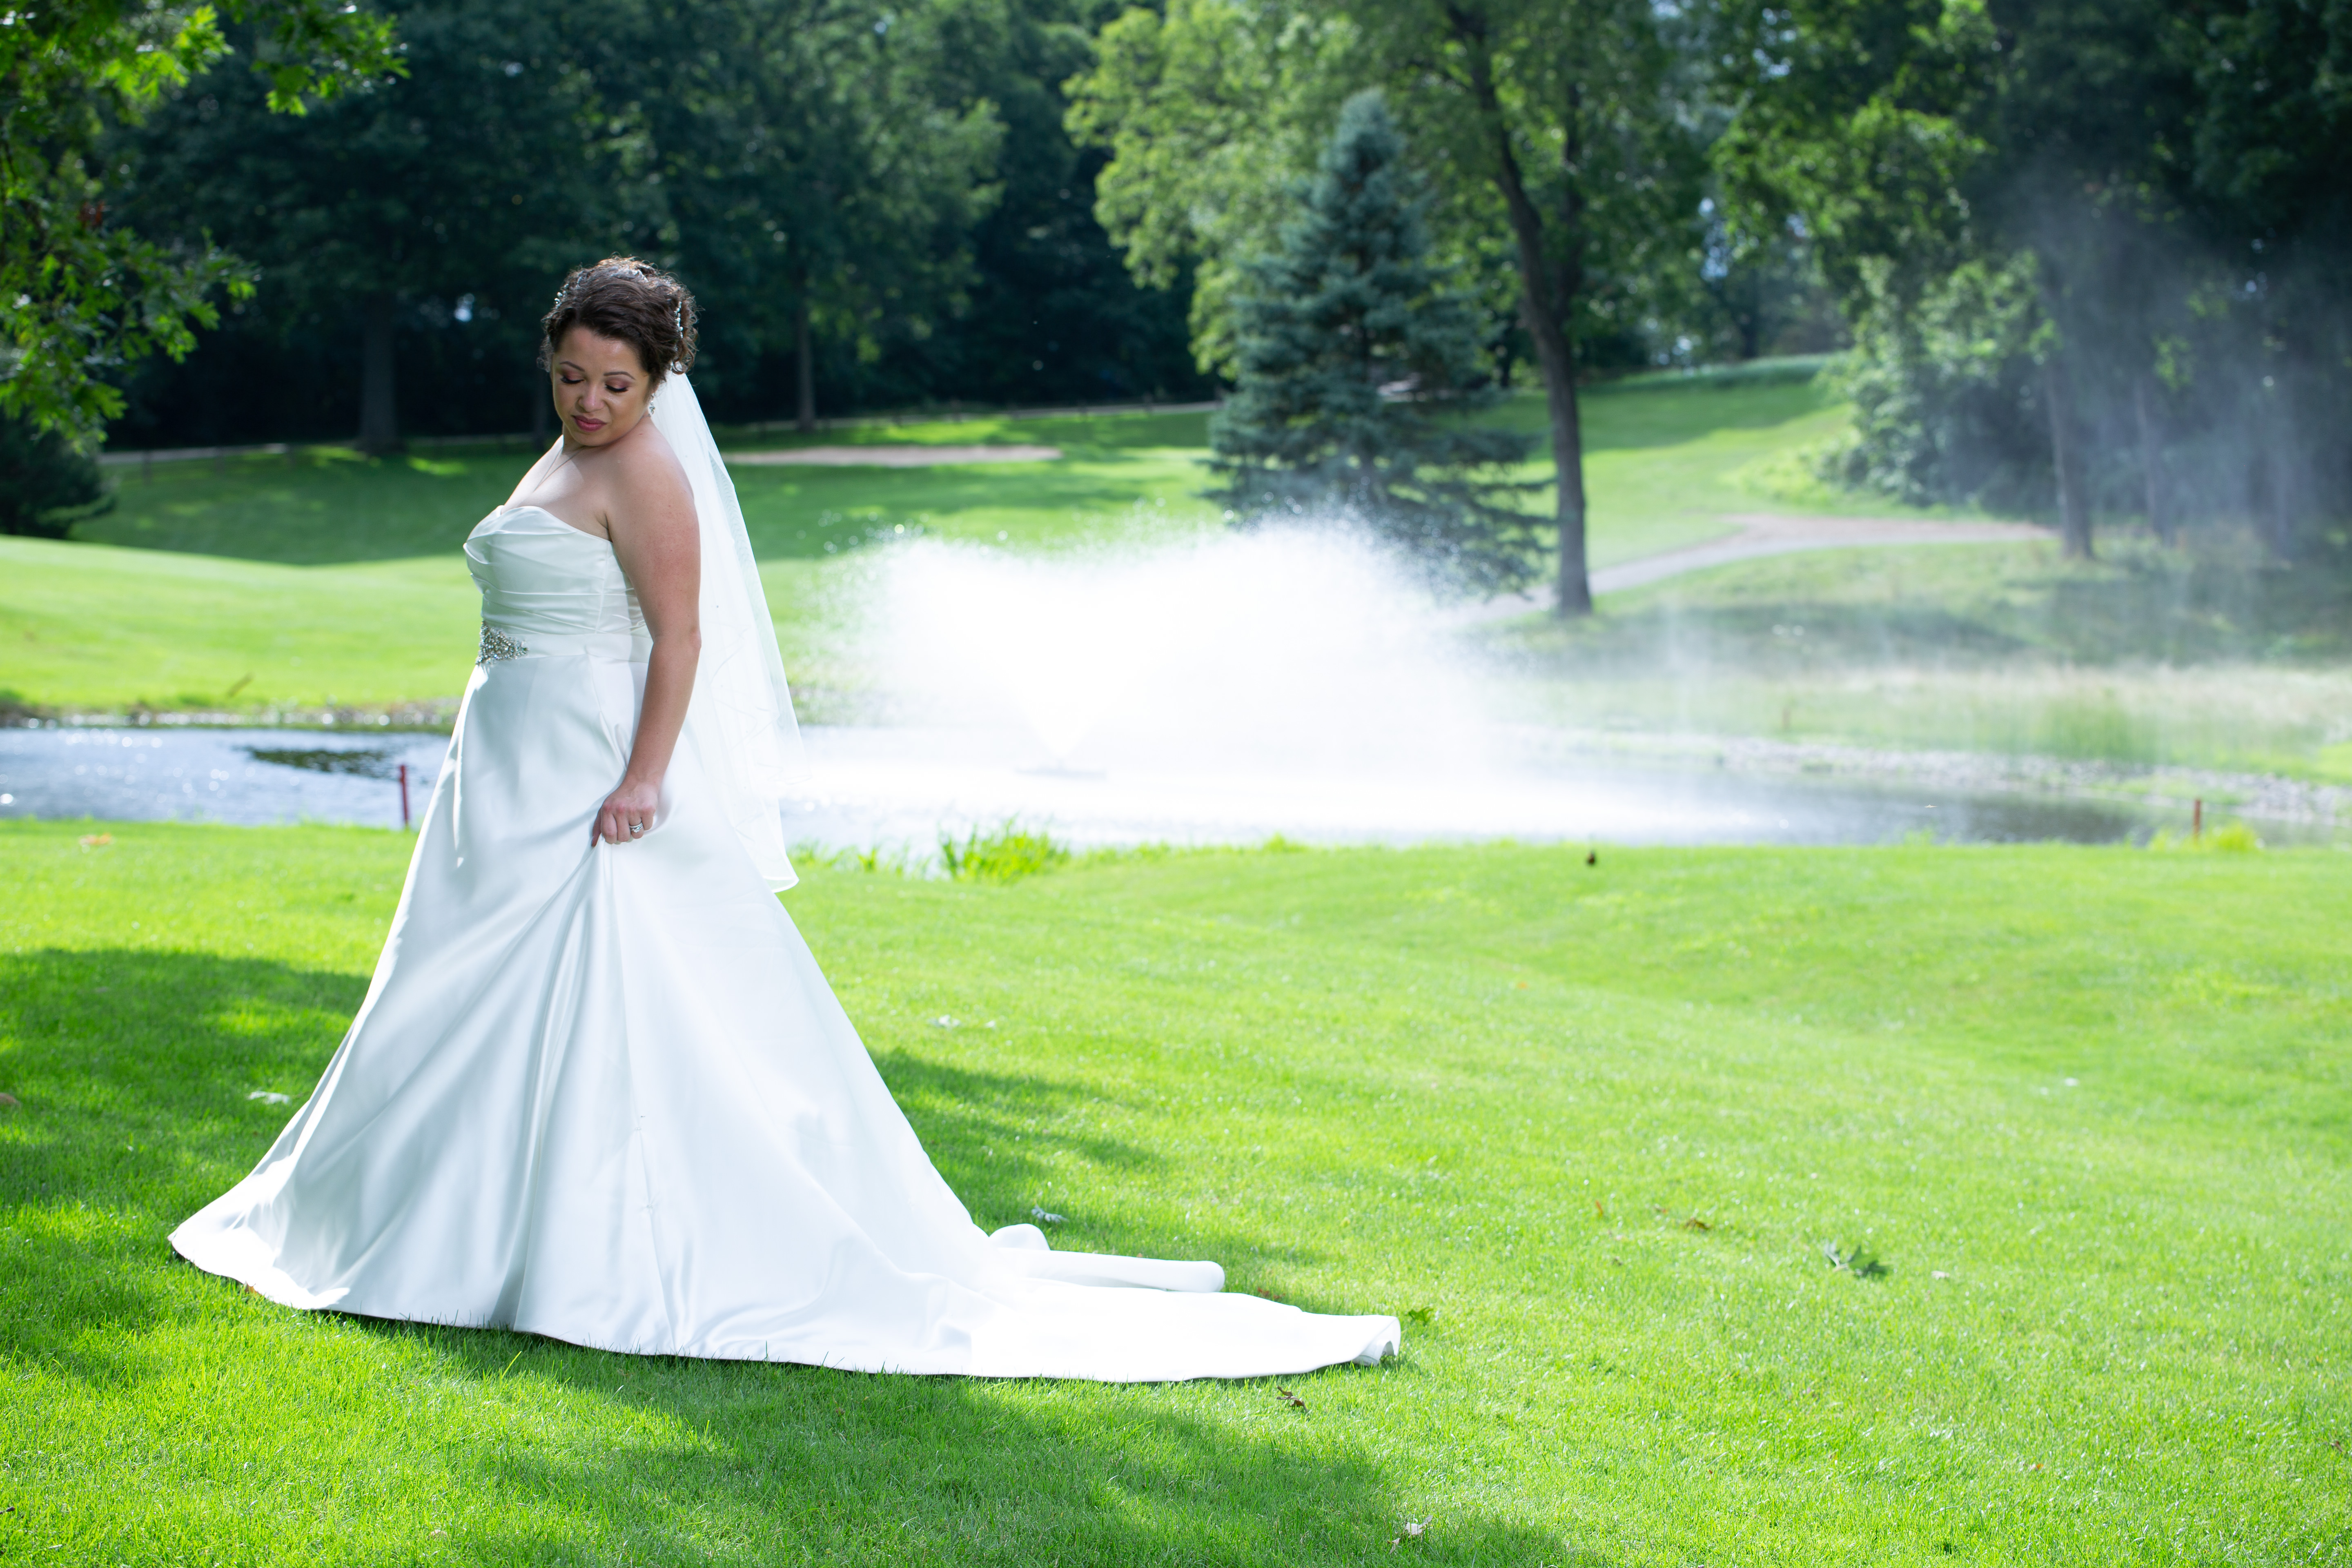 Wedding photography at Koshkonong Mounds Country Club